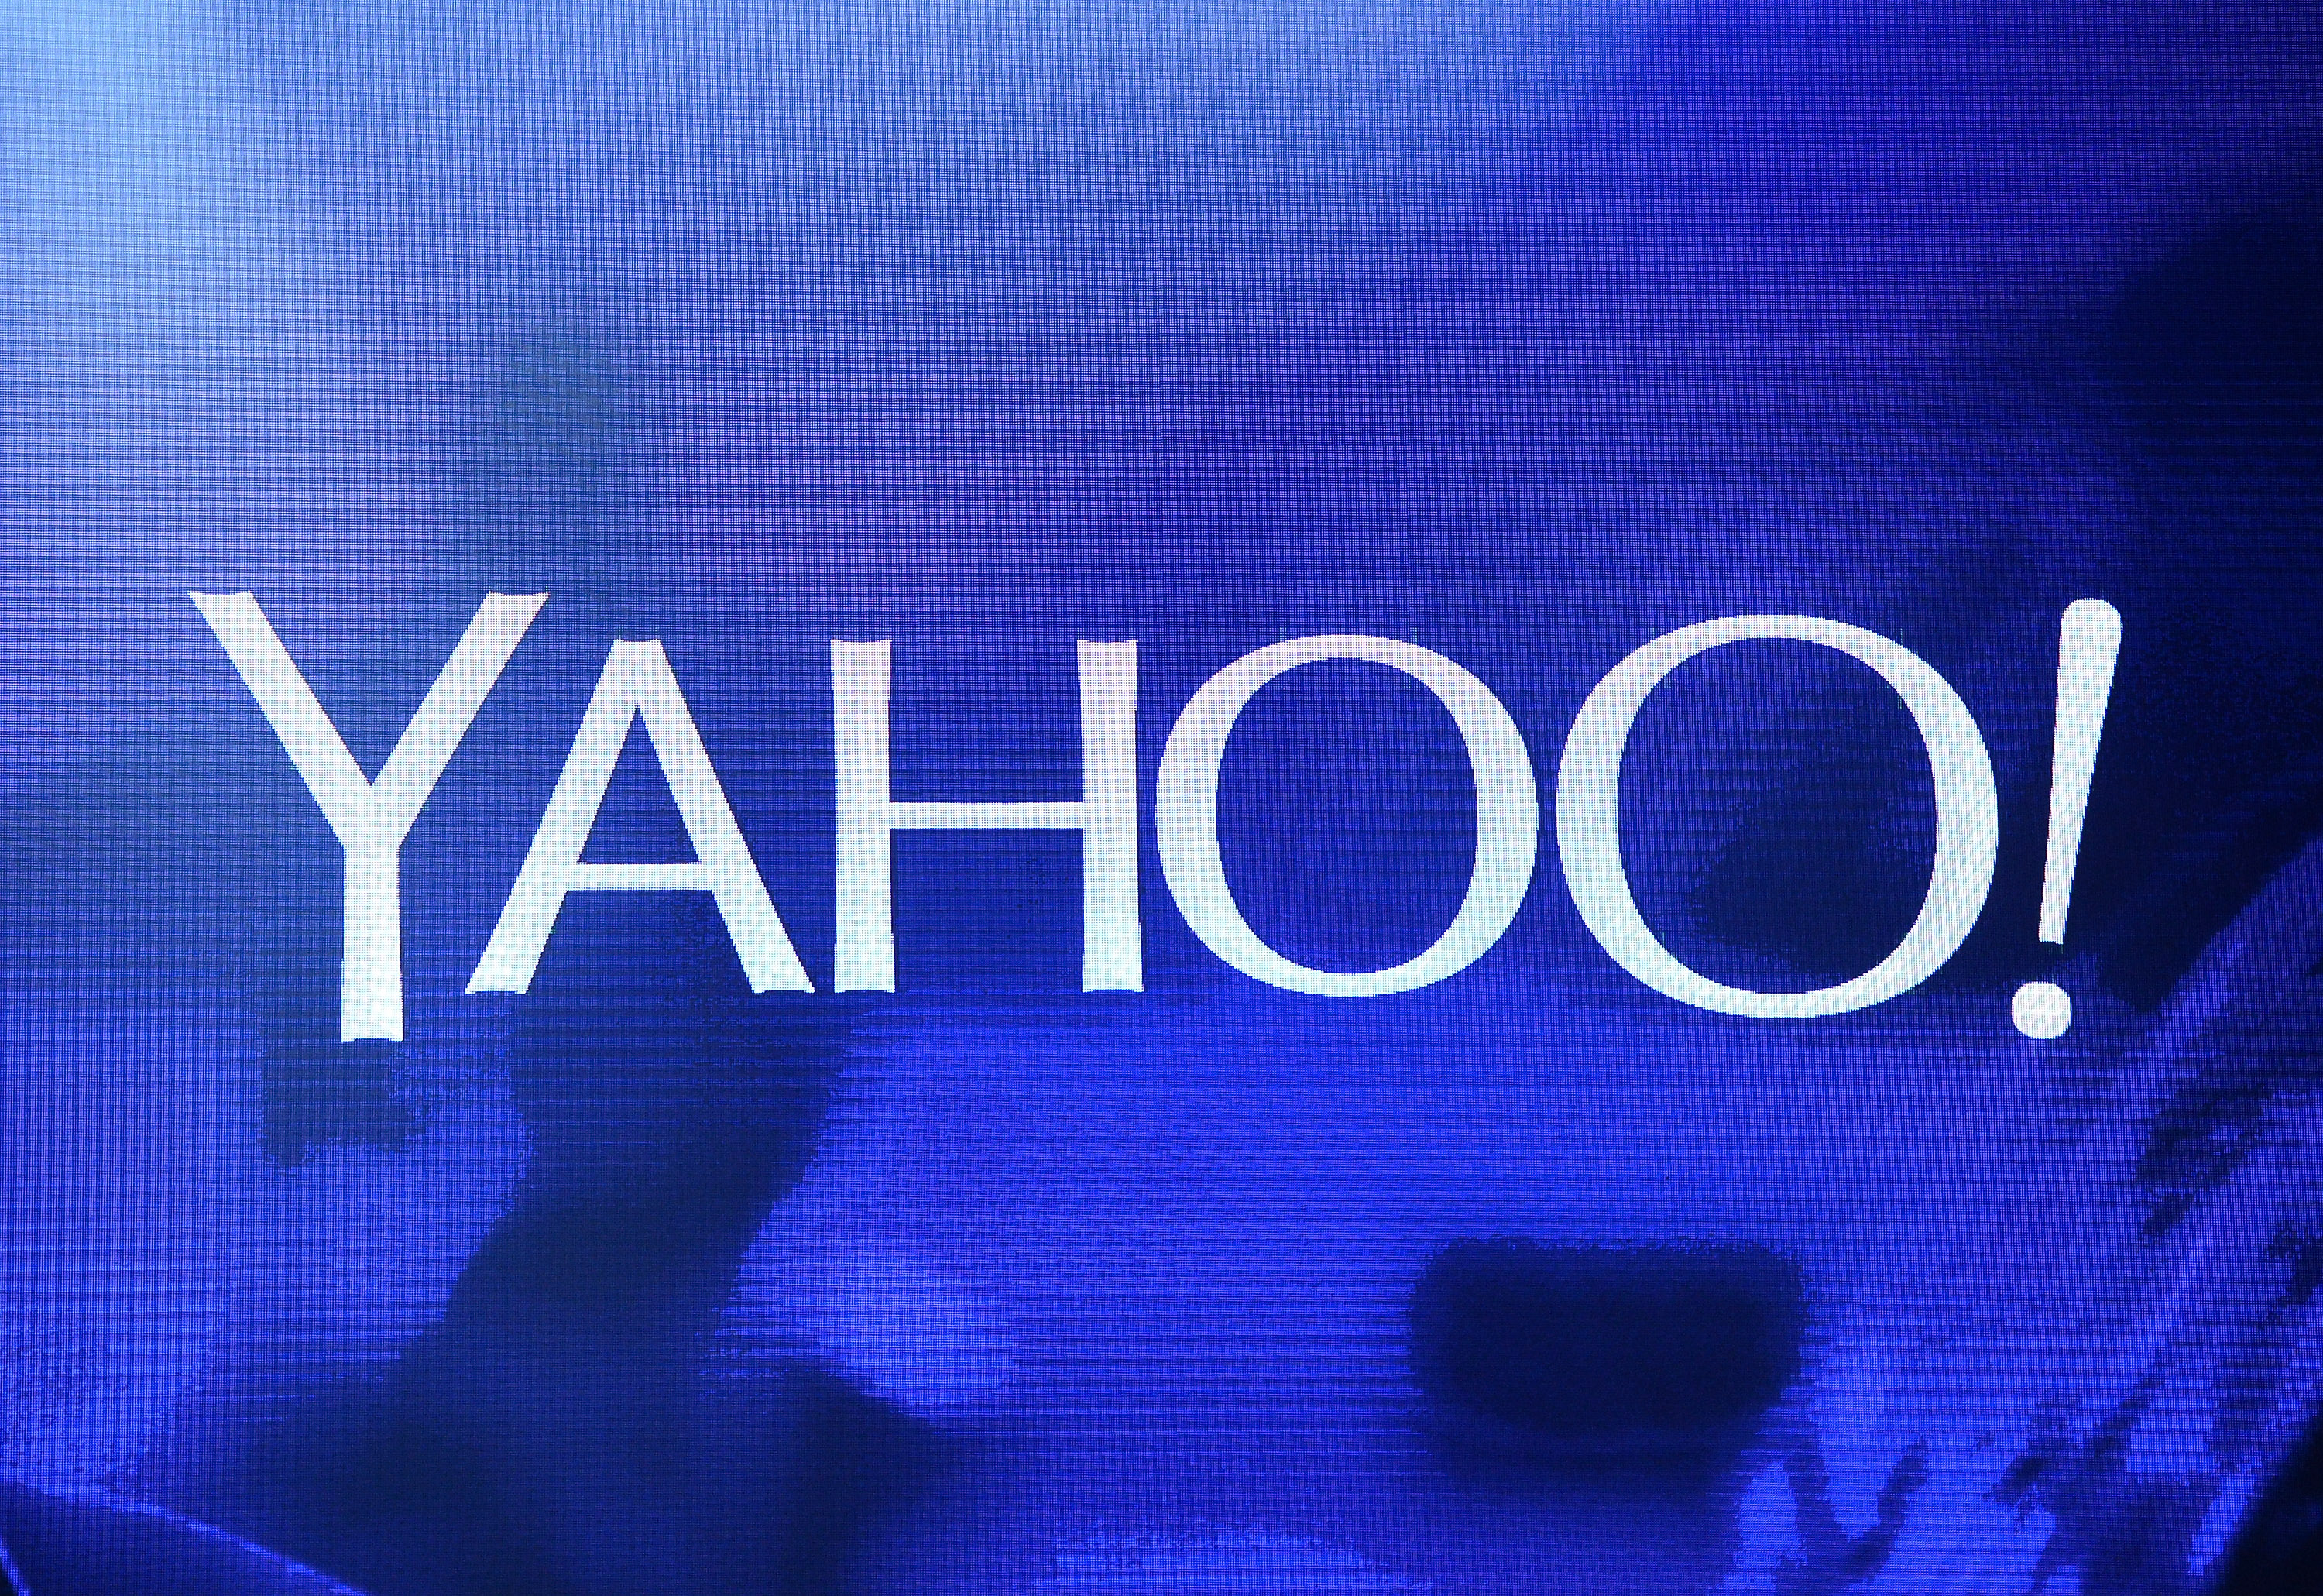 Short-Film Site Viddsee Inks Partnership with Yahoo